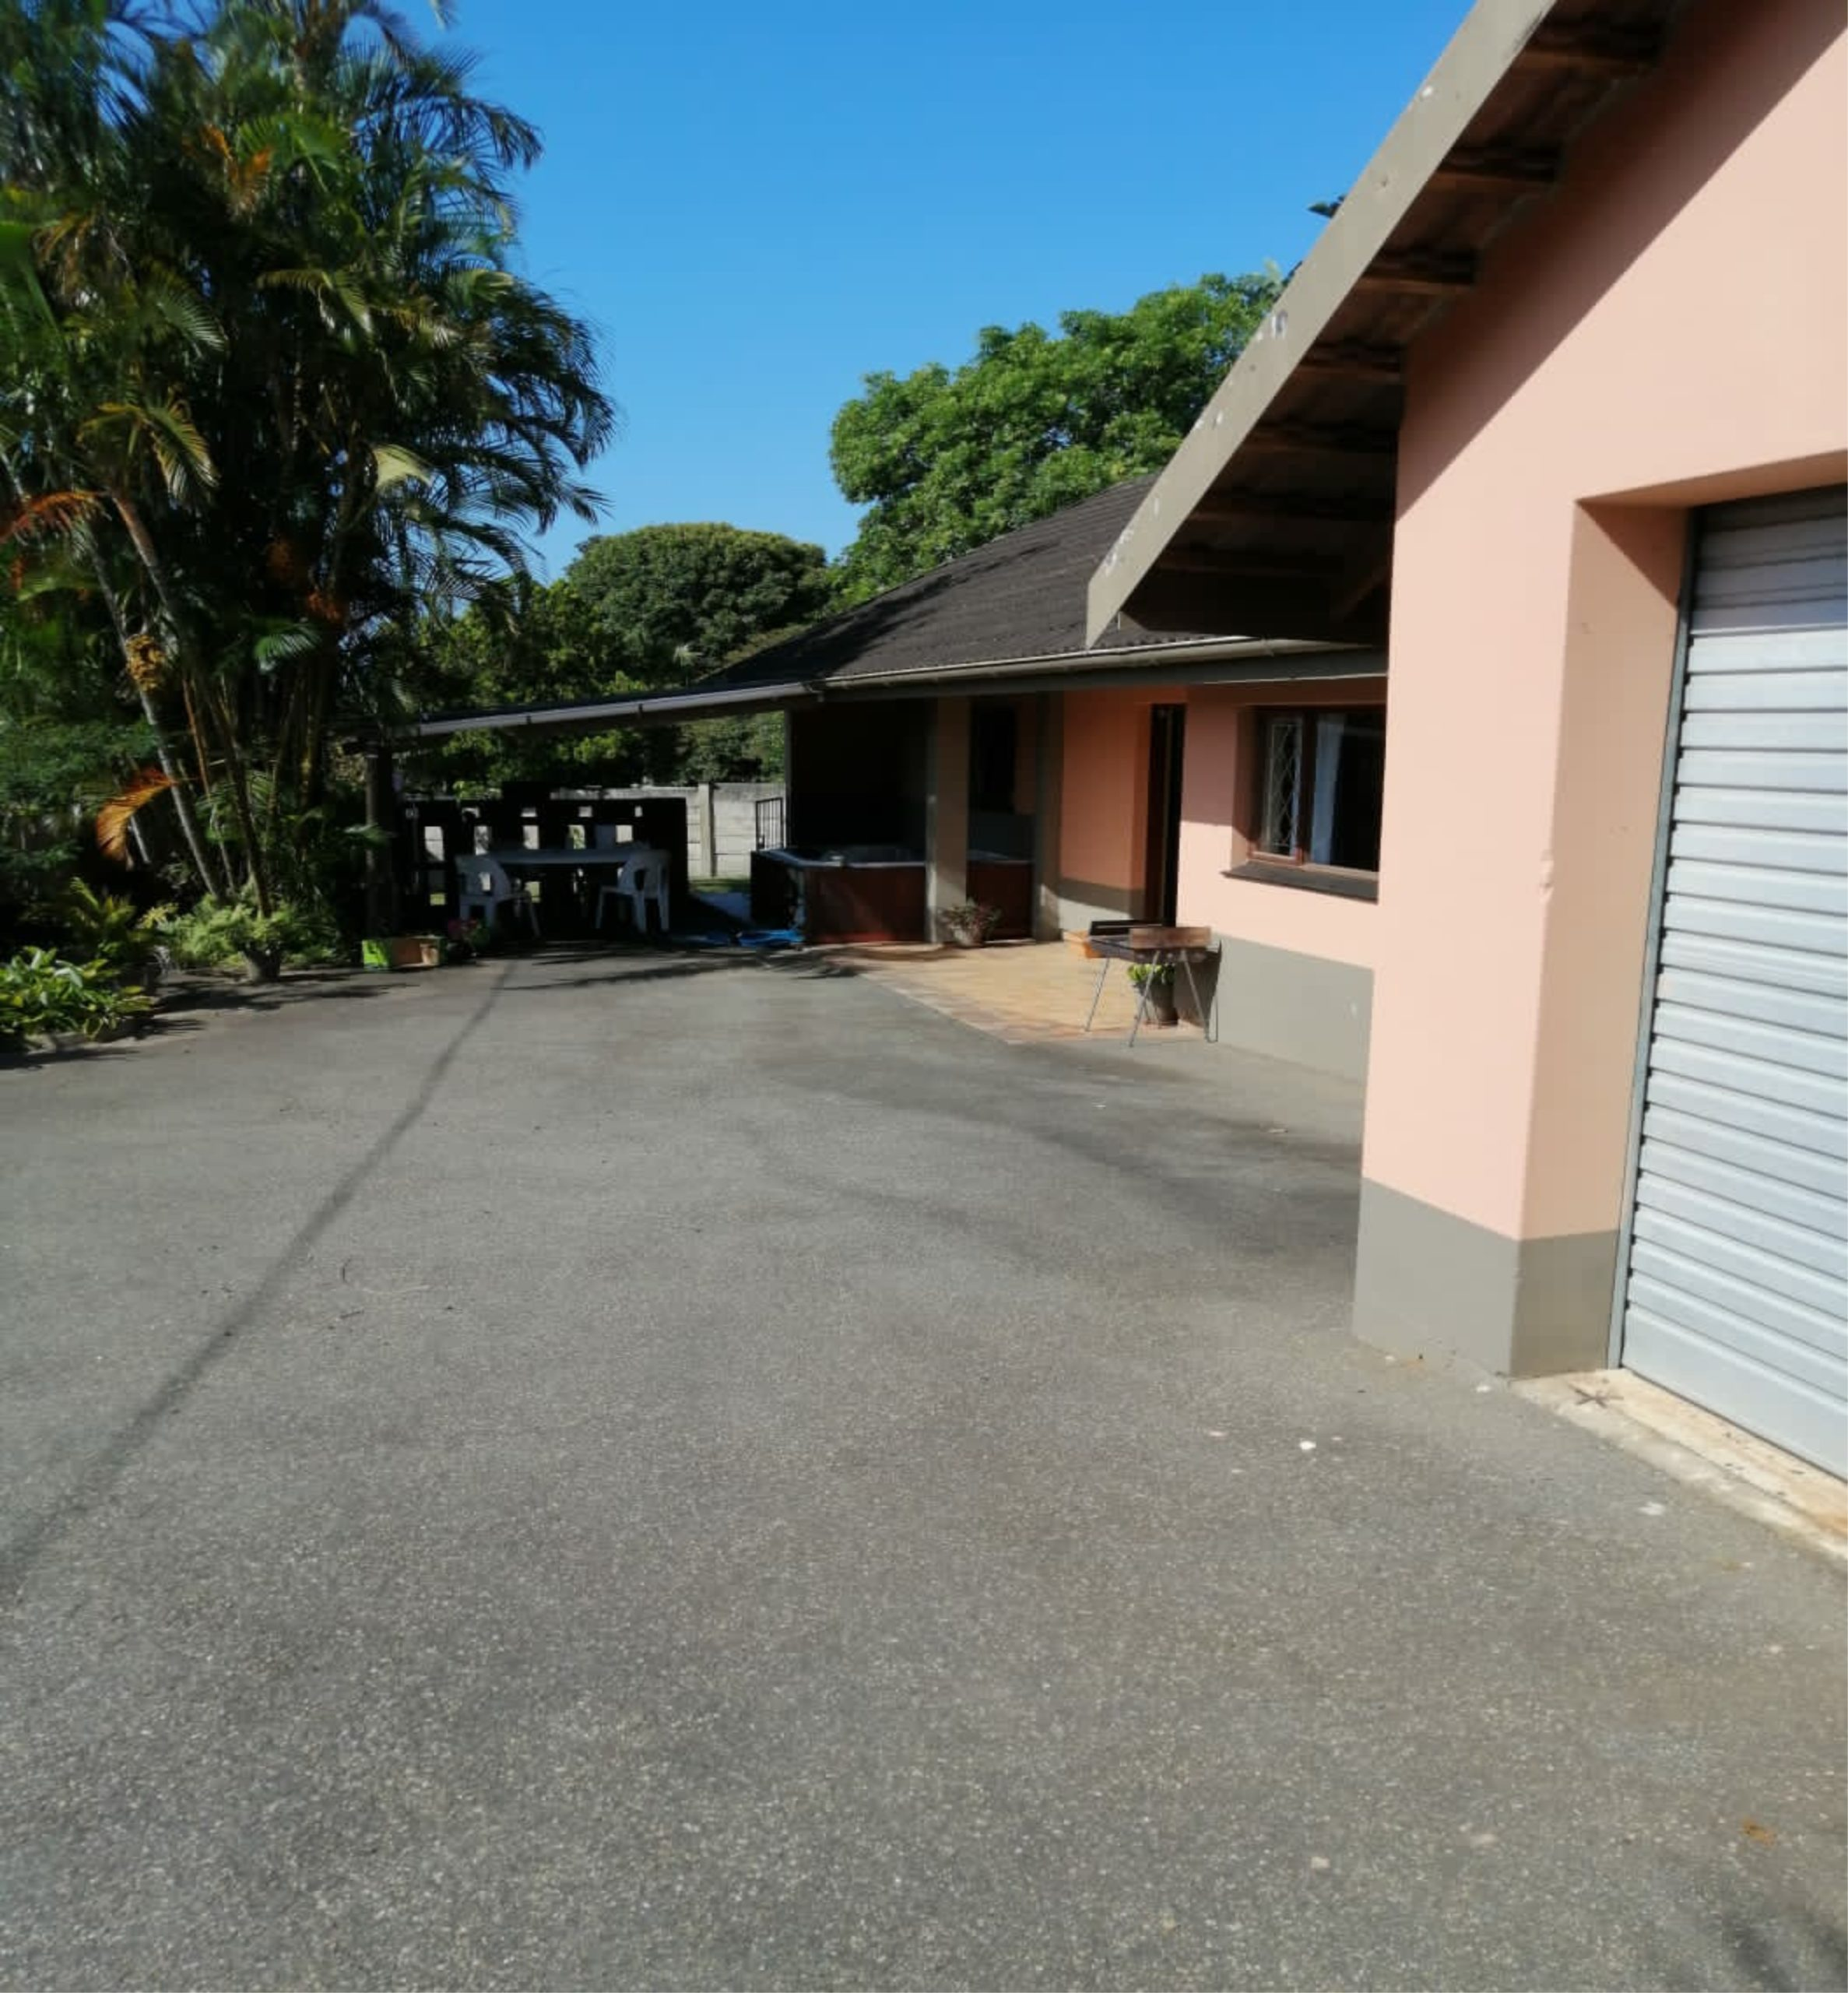 Modern family home for sale in Uvongo on the South Coast.